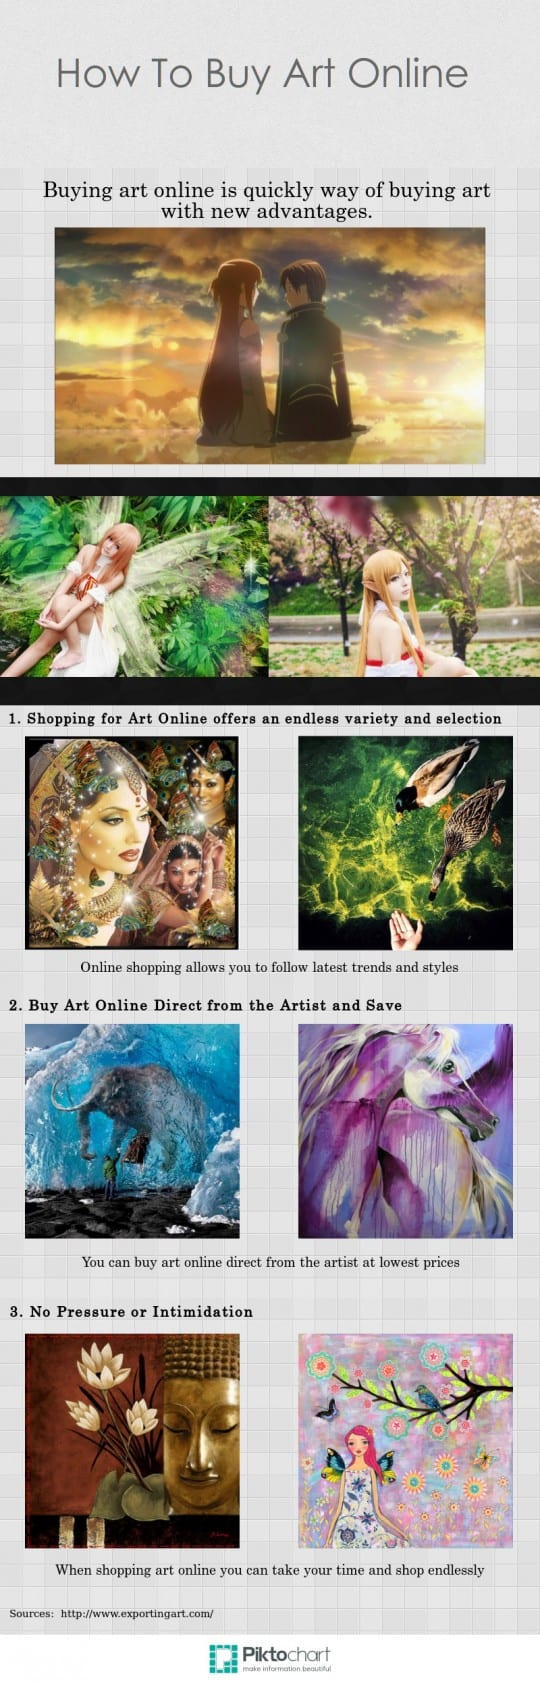 How To Buy Art Online